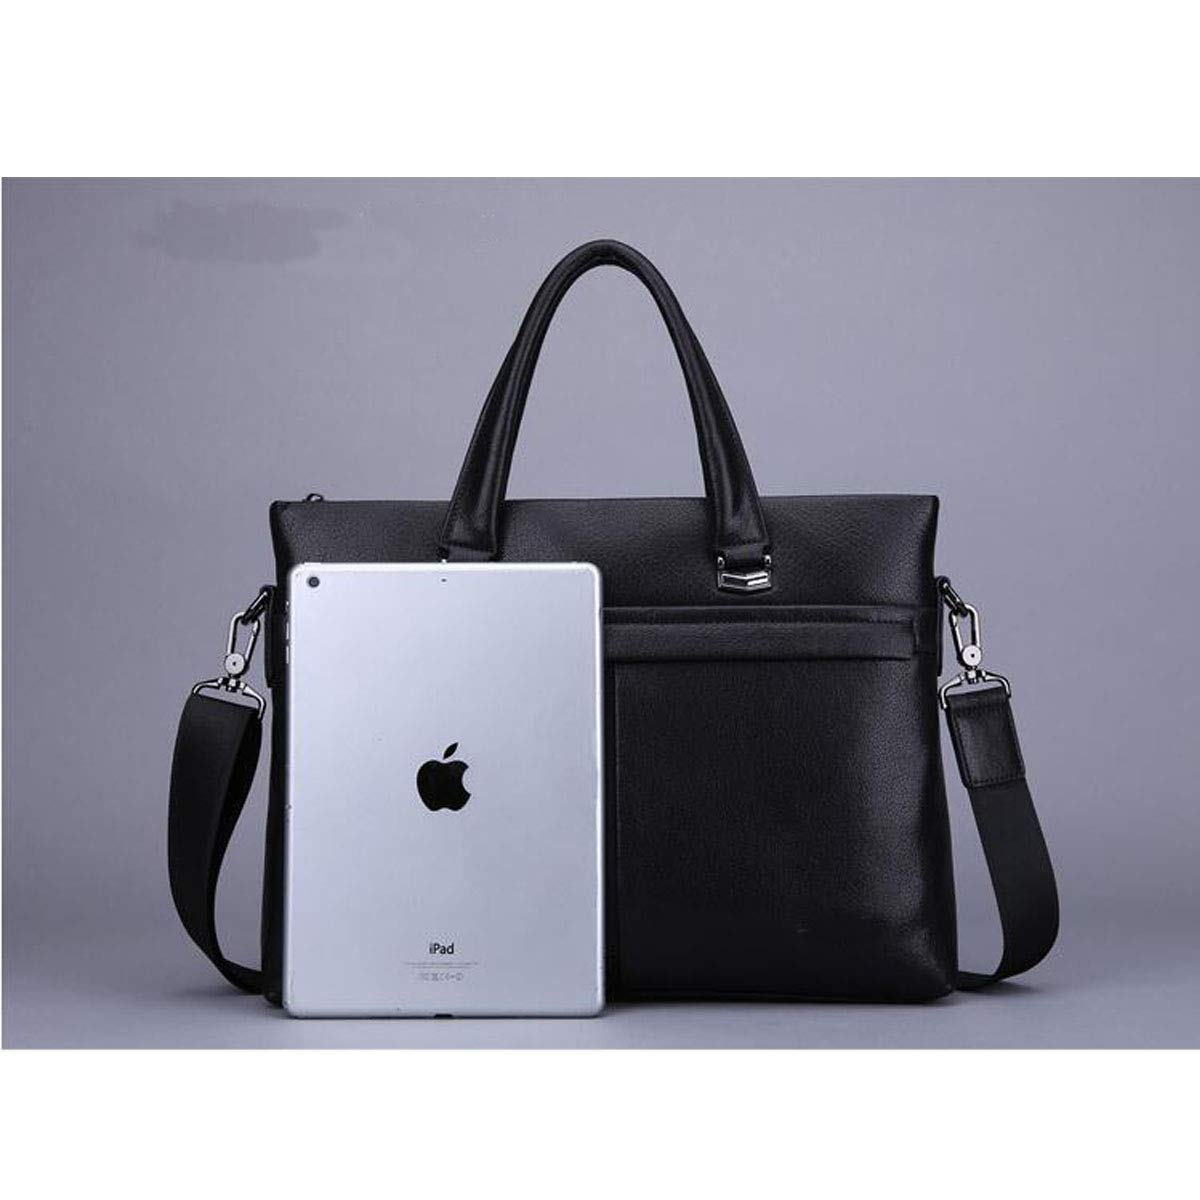 Briefcase Large Capacity Computer Bag Mens Business Top Leather Handbag Size: 38728cm